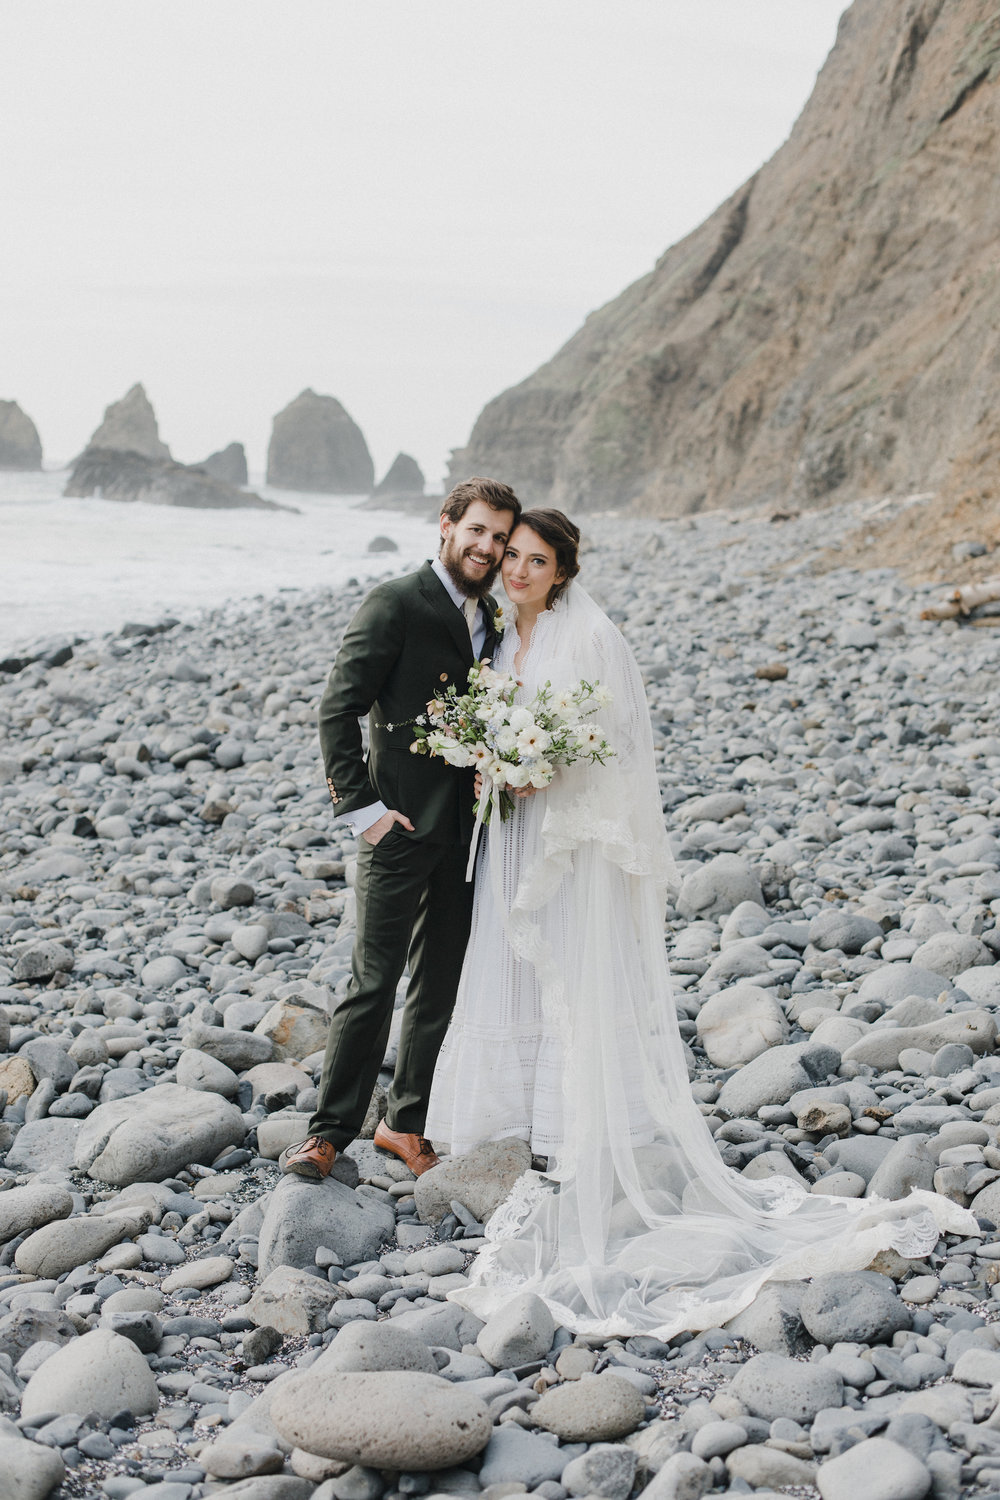 GABRIELLA + TYLER - CANNON BEACH OREGON